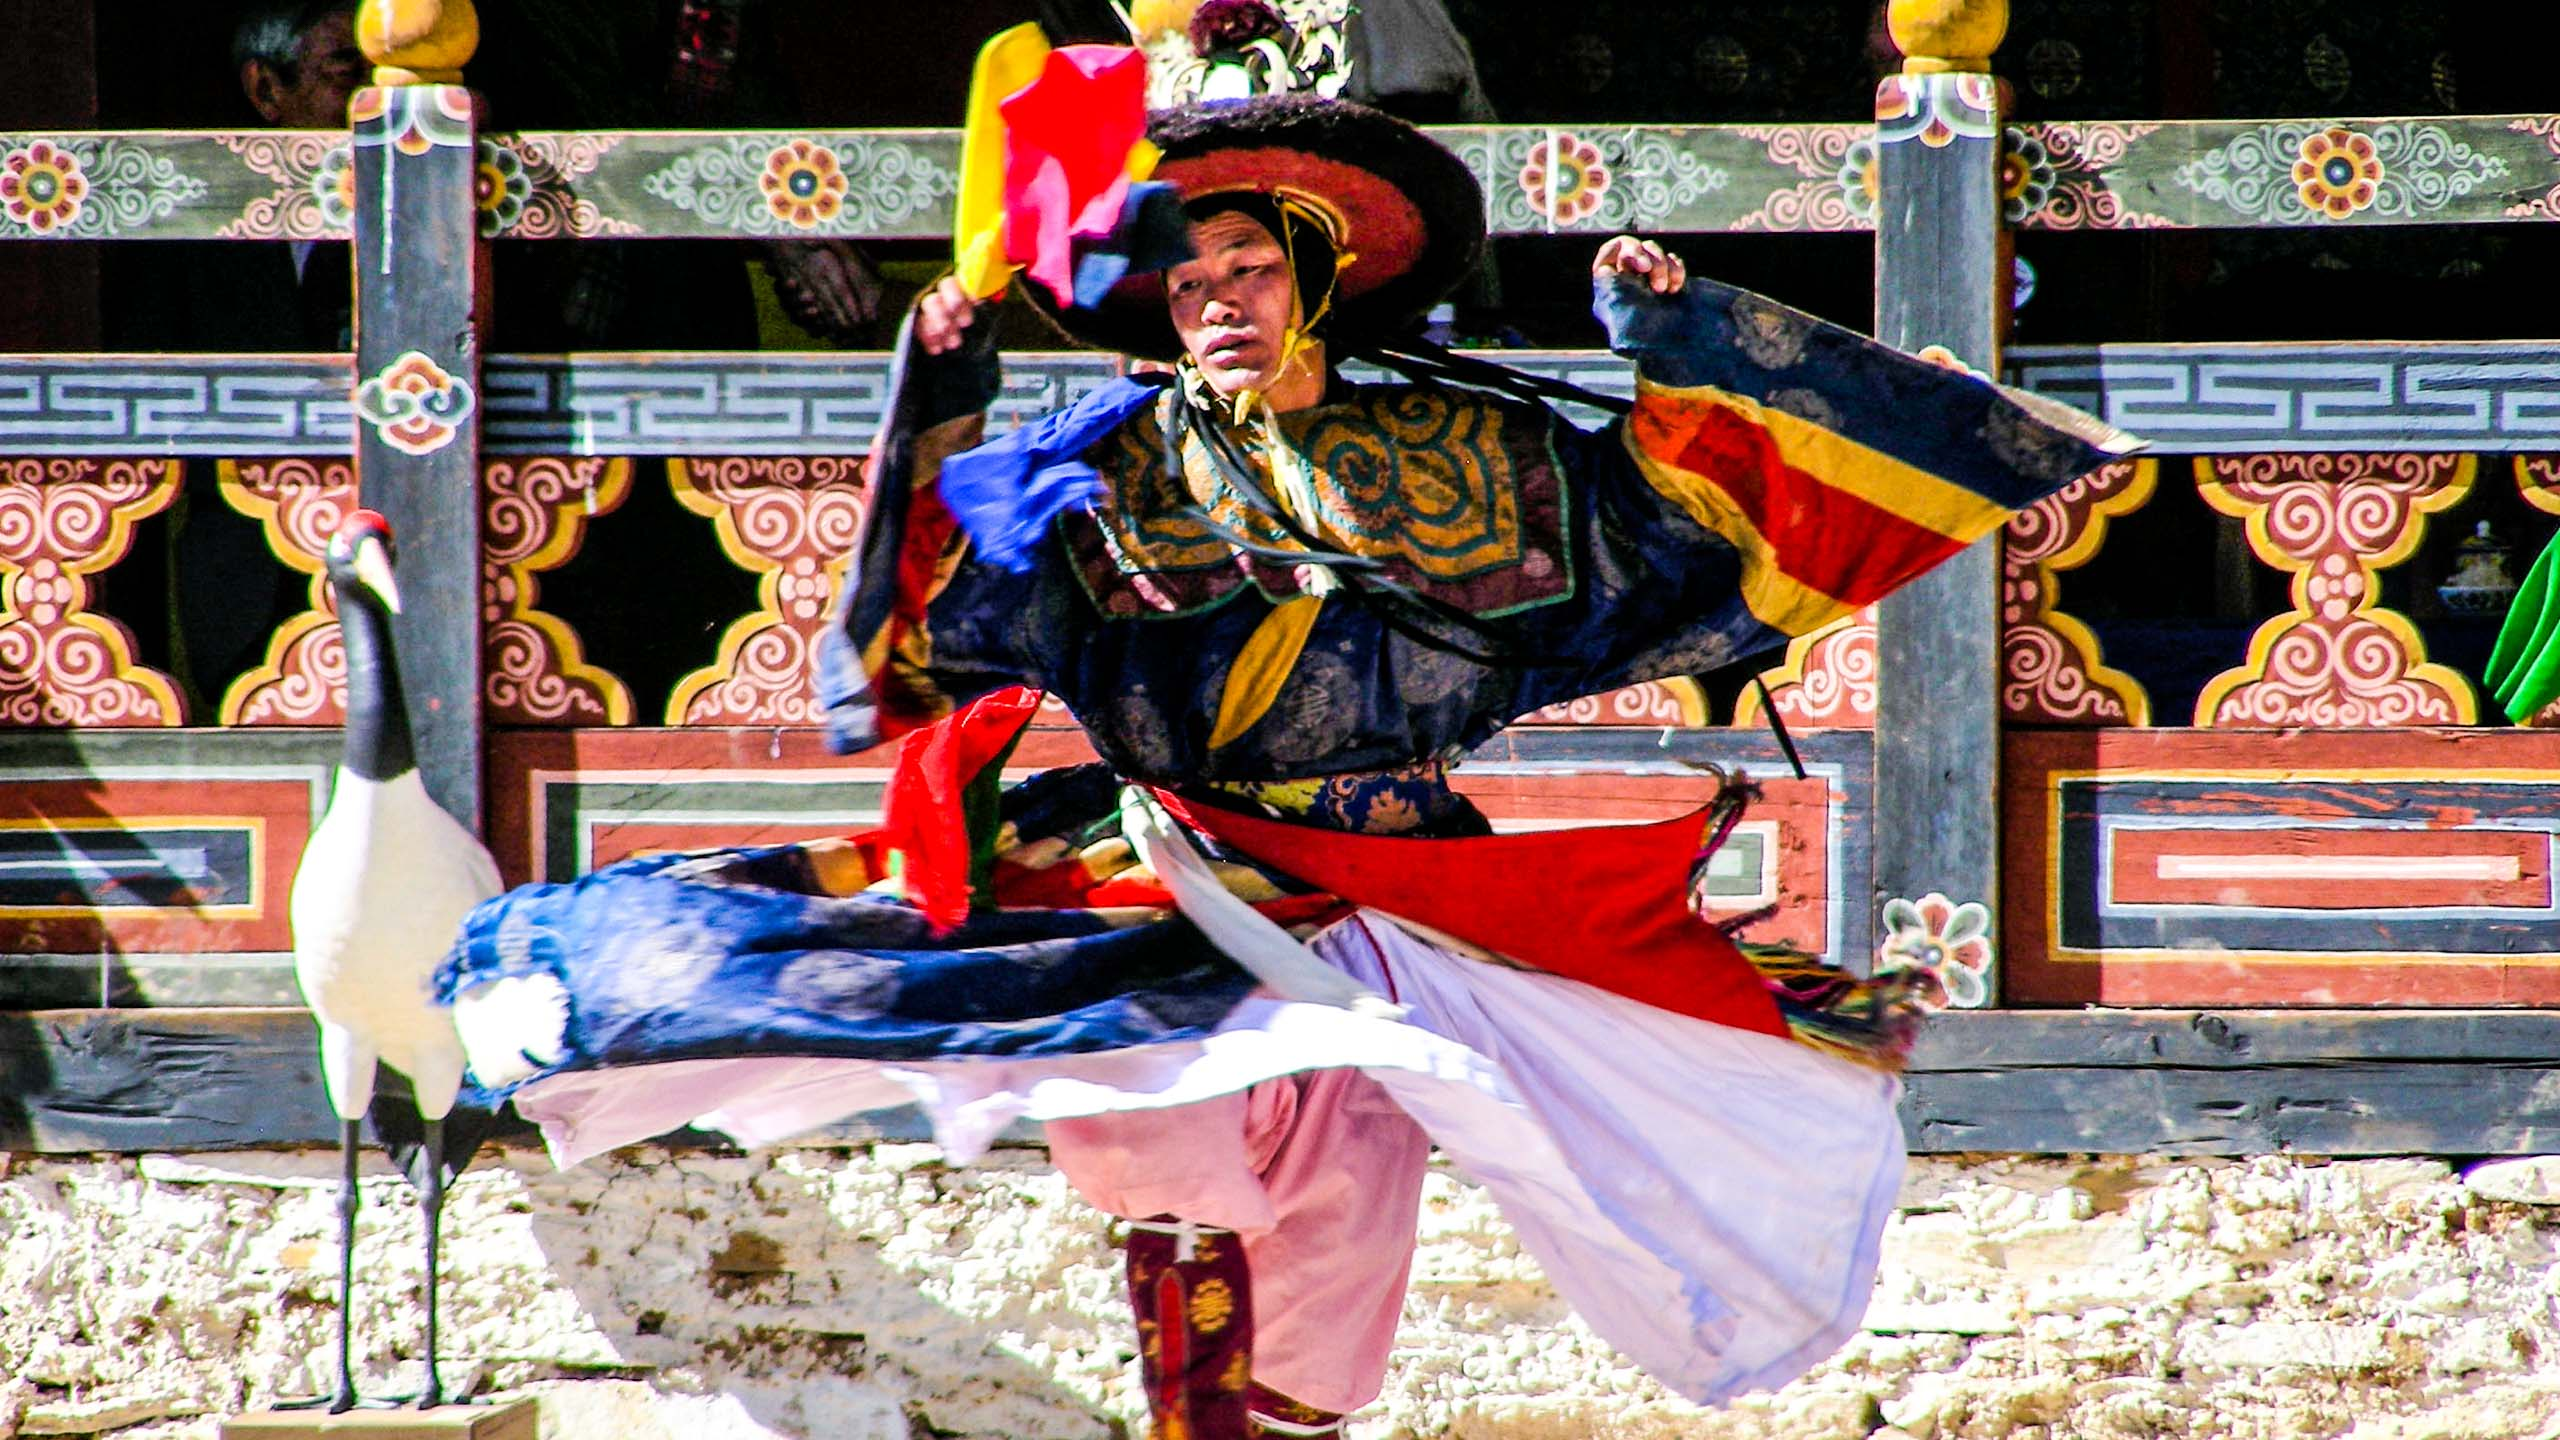 Colorfully dressed Bhutan man dances at festival